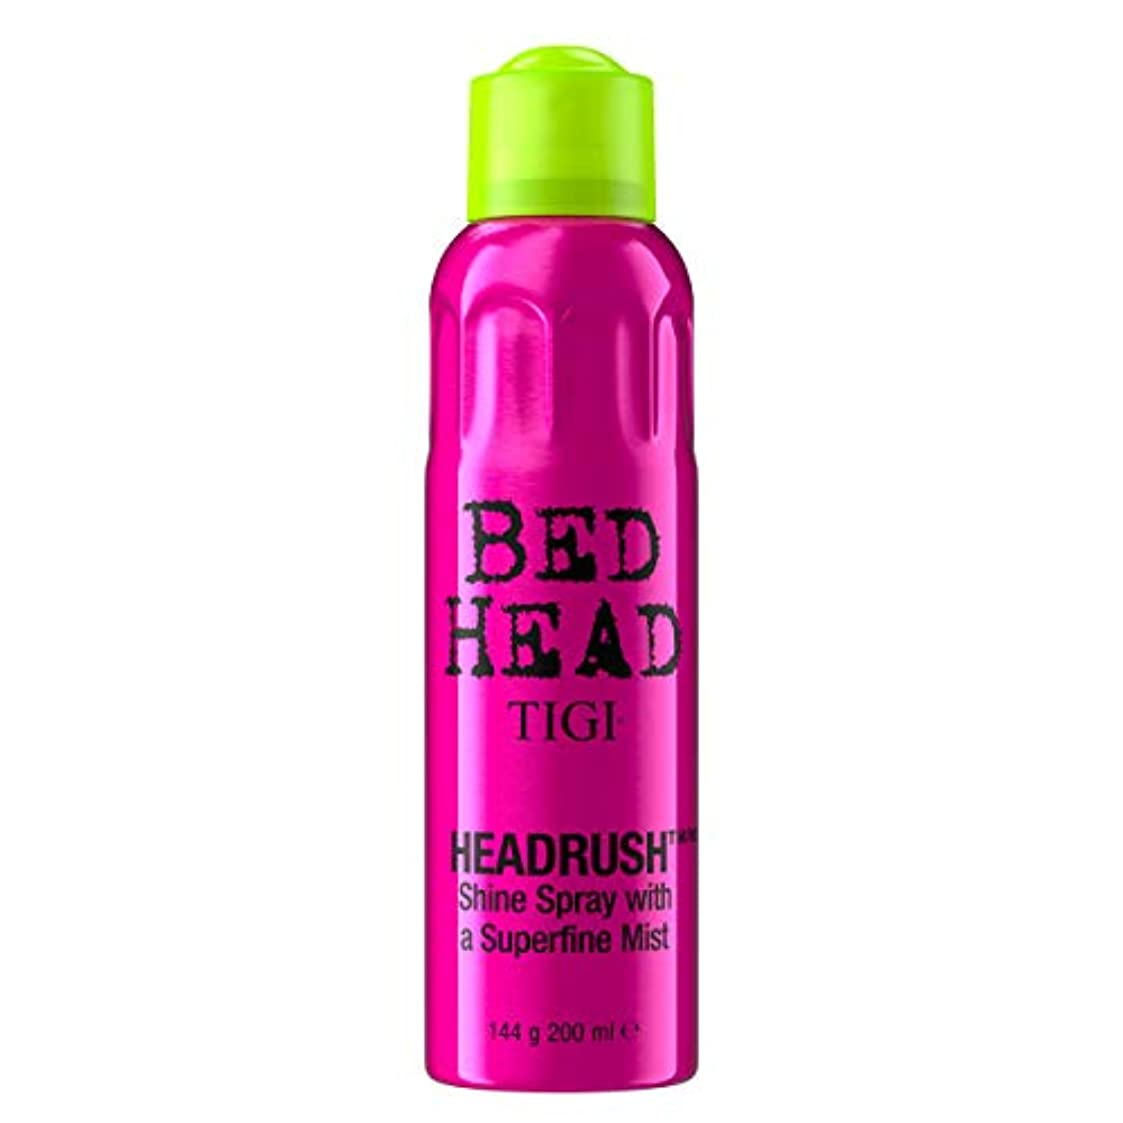 教え目の前の郵便物Tigi Headrush Shine Spray 200ml